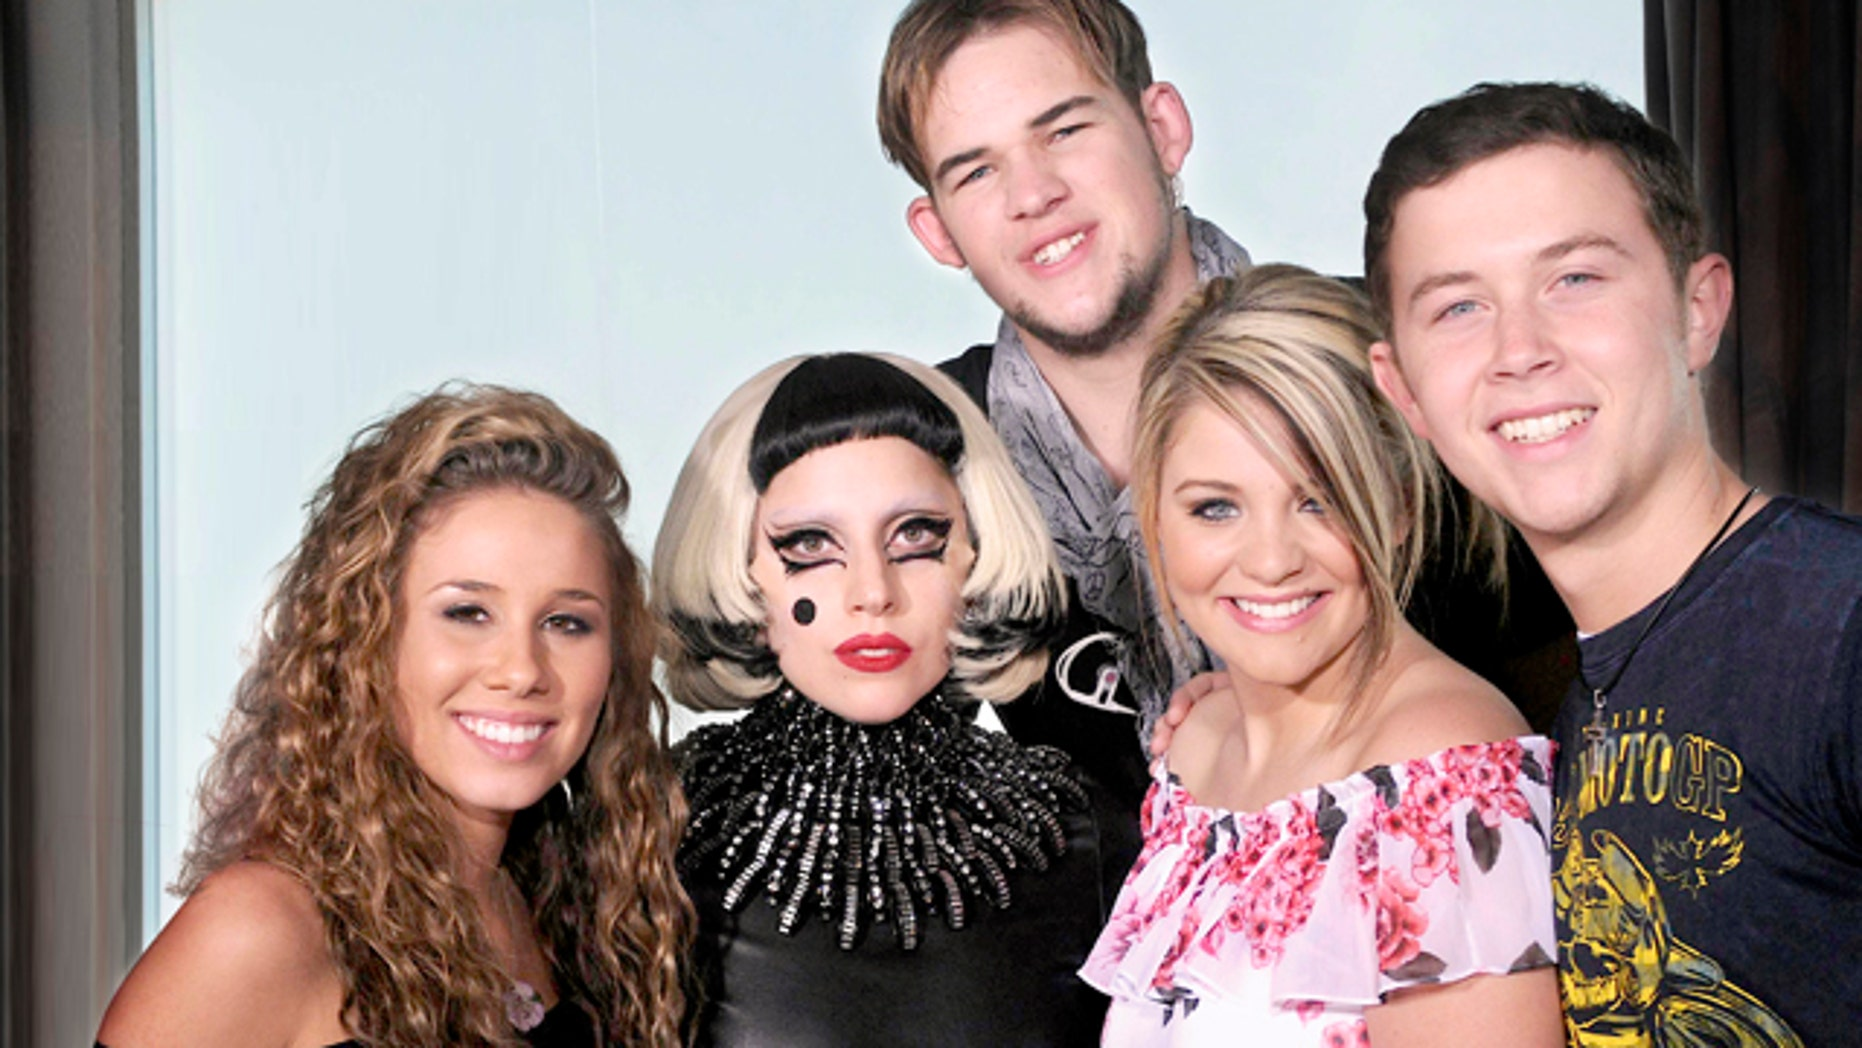 """May 11: In this publicity image released by Fox, Lady Gaga, center, poses with the final four contestants, from left, Haley Reinhart, James Durbin, Lauren Alaina and Scotty McCreery from the singing competition series """"American Idol"""" in Los Angeles."""